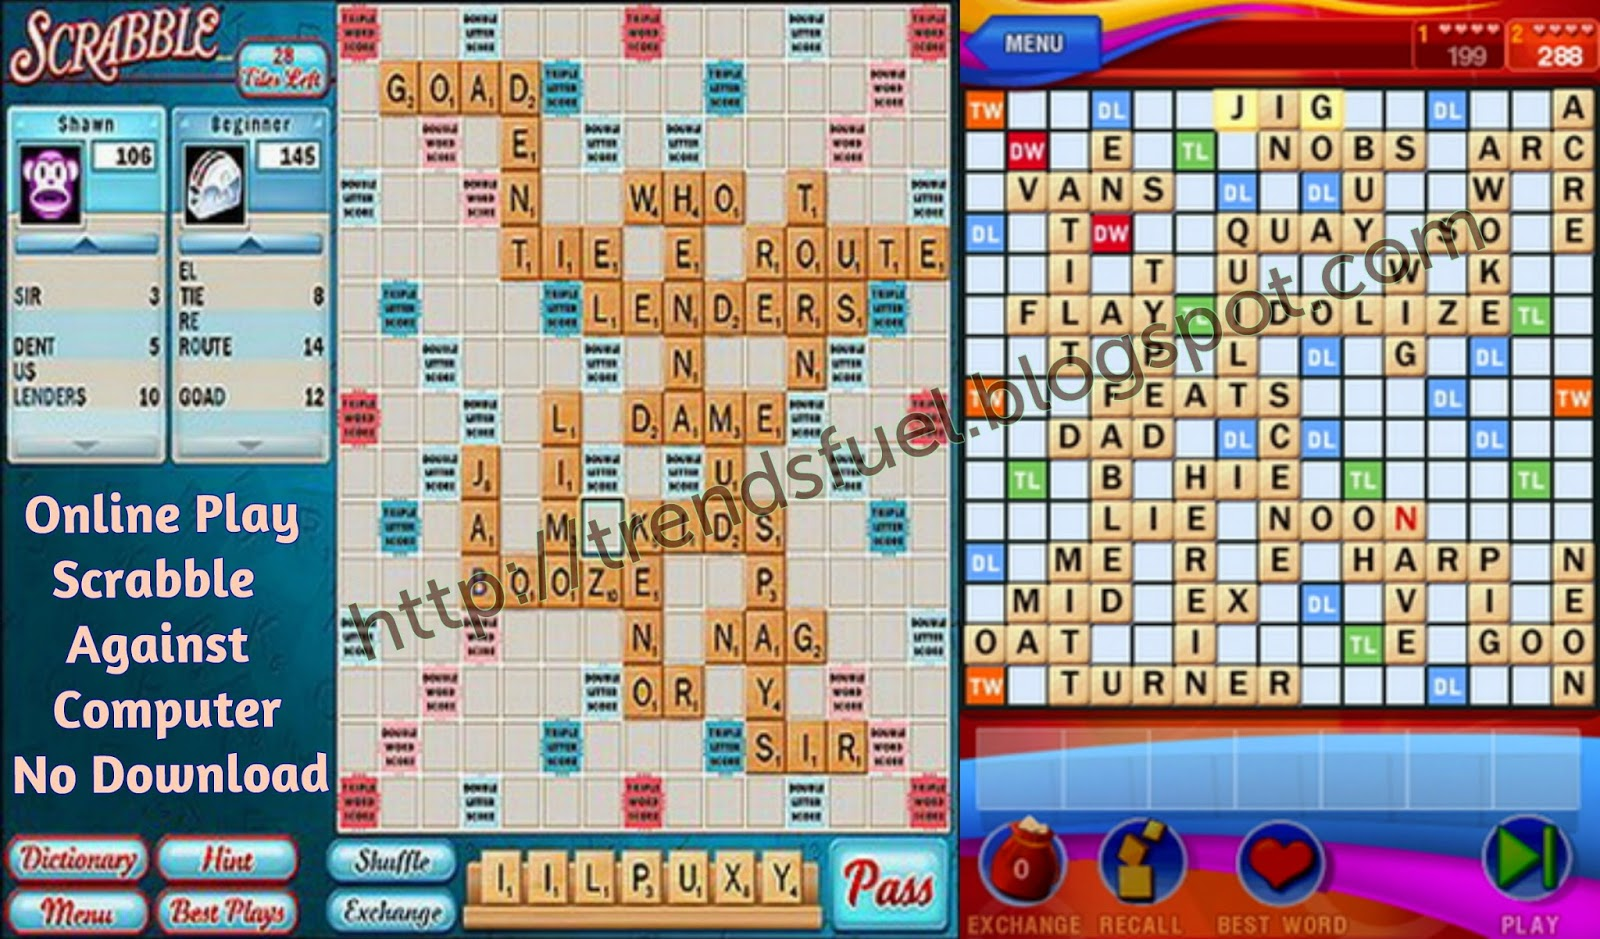 Play free scrabble no register no download games online play.